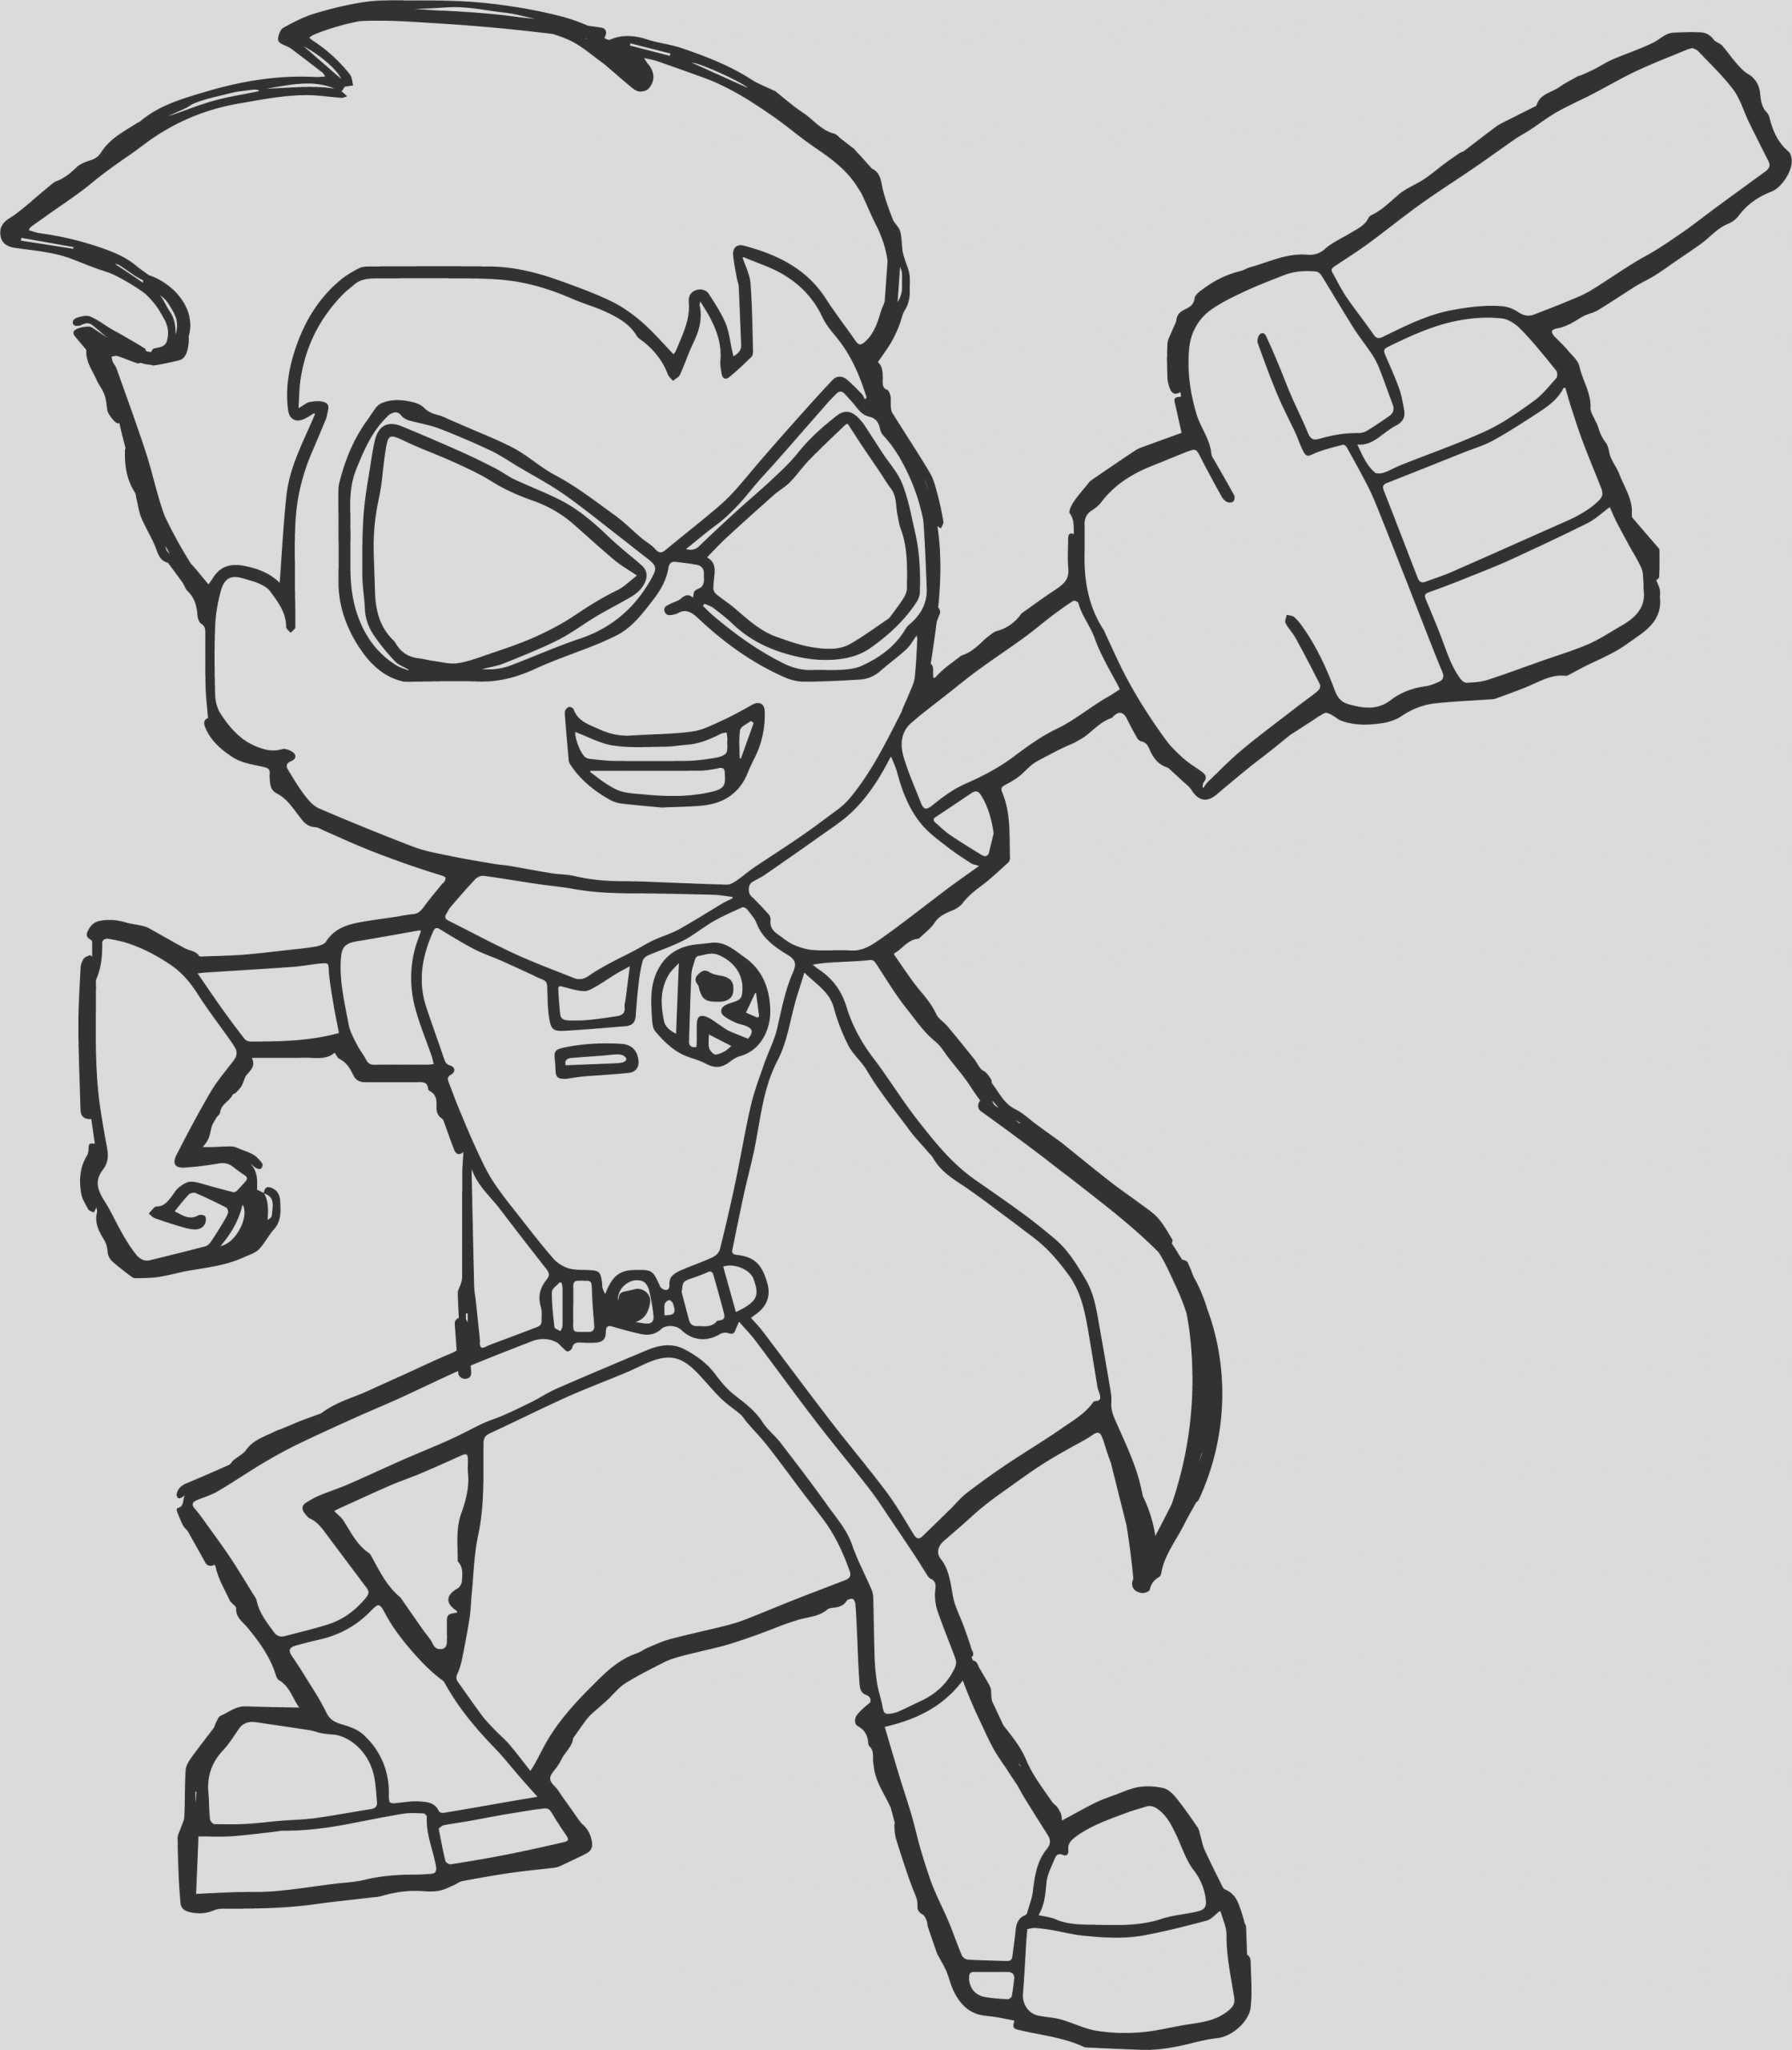 robin teen titans go robin coloring pages